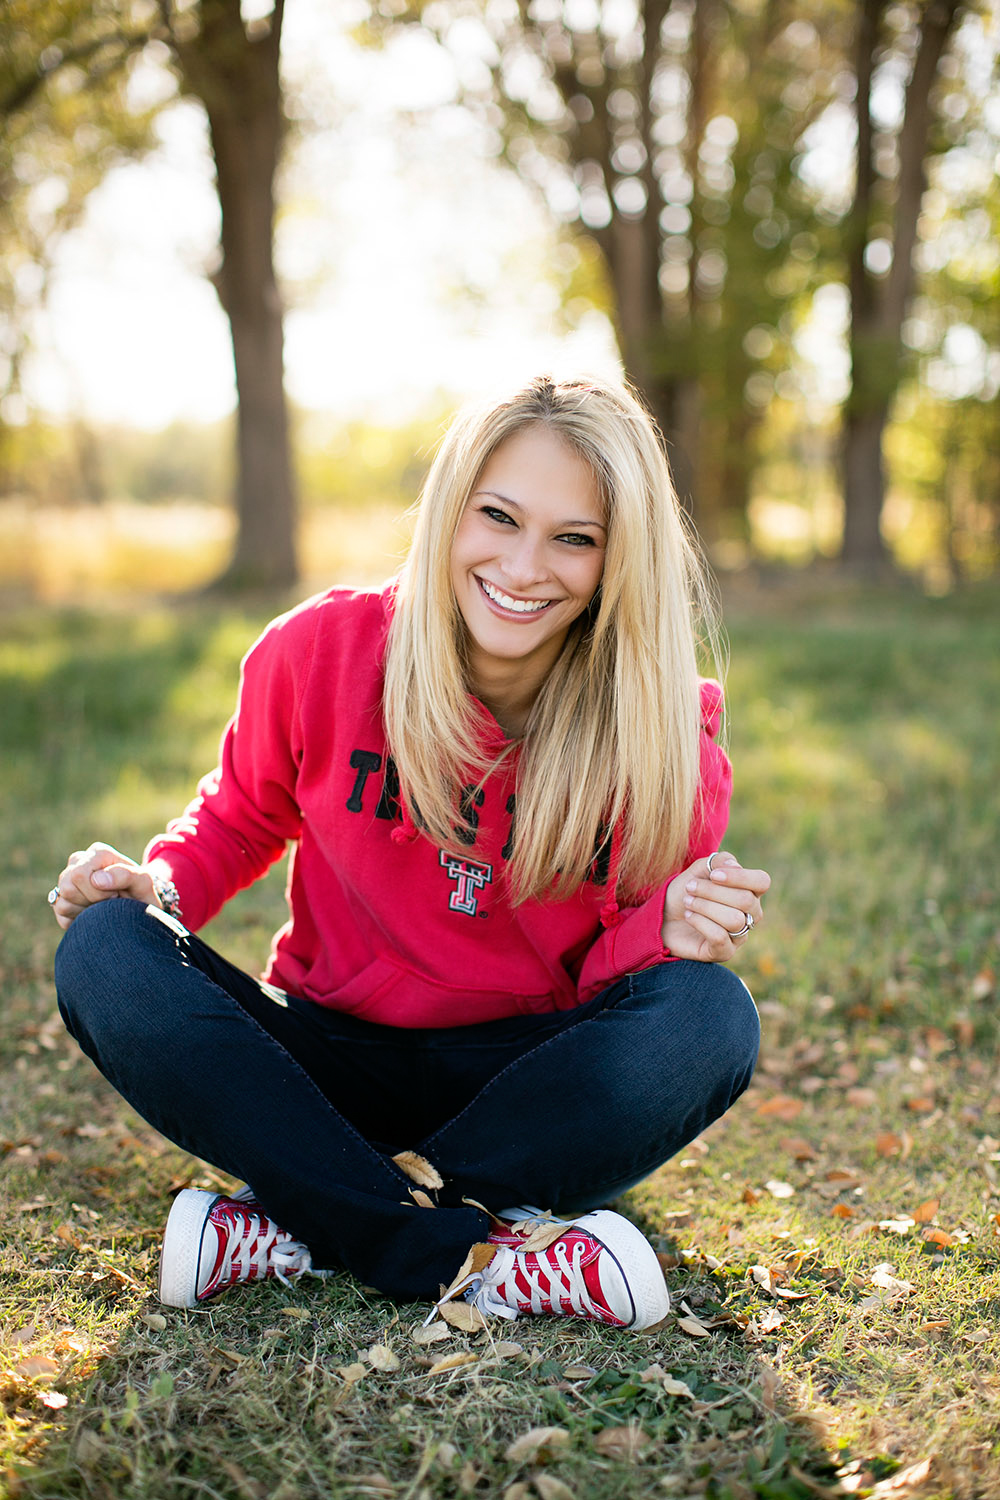 linda-mcmillan-photography-texas-tech-senior-sweater-sneakers.jpg